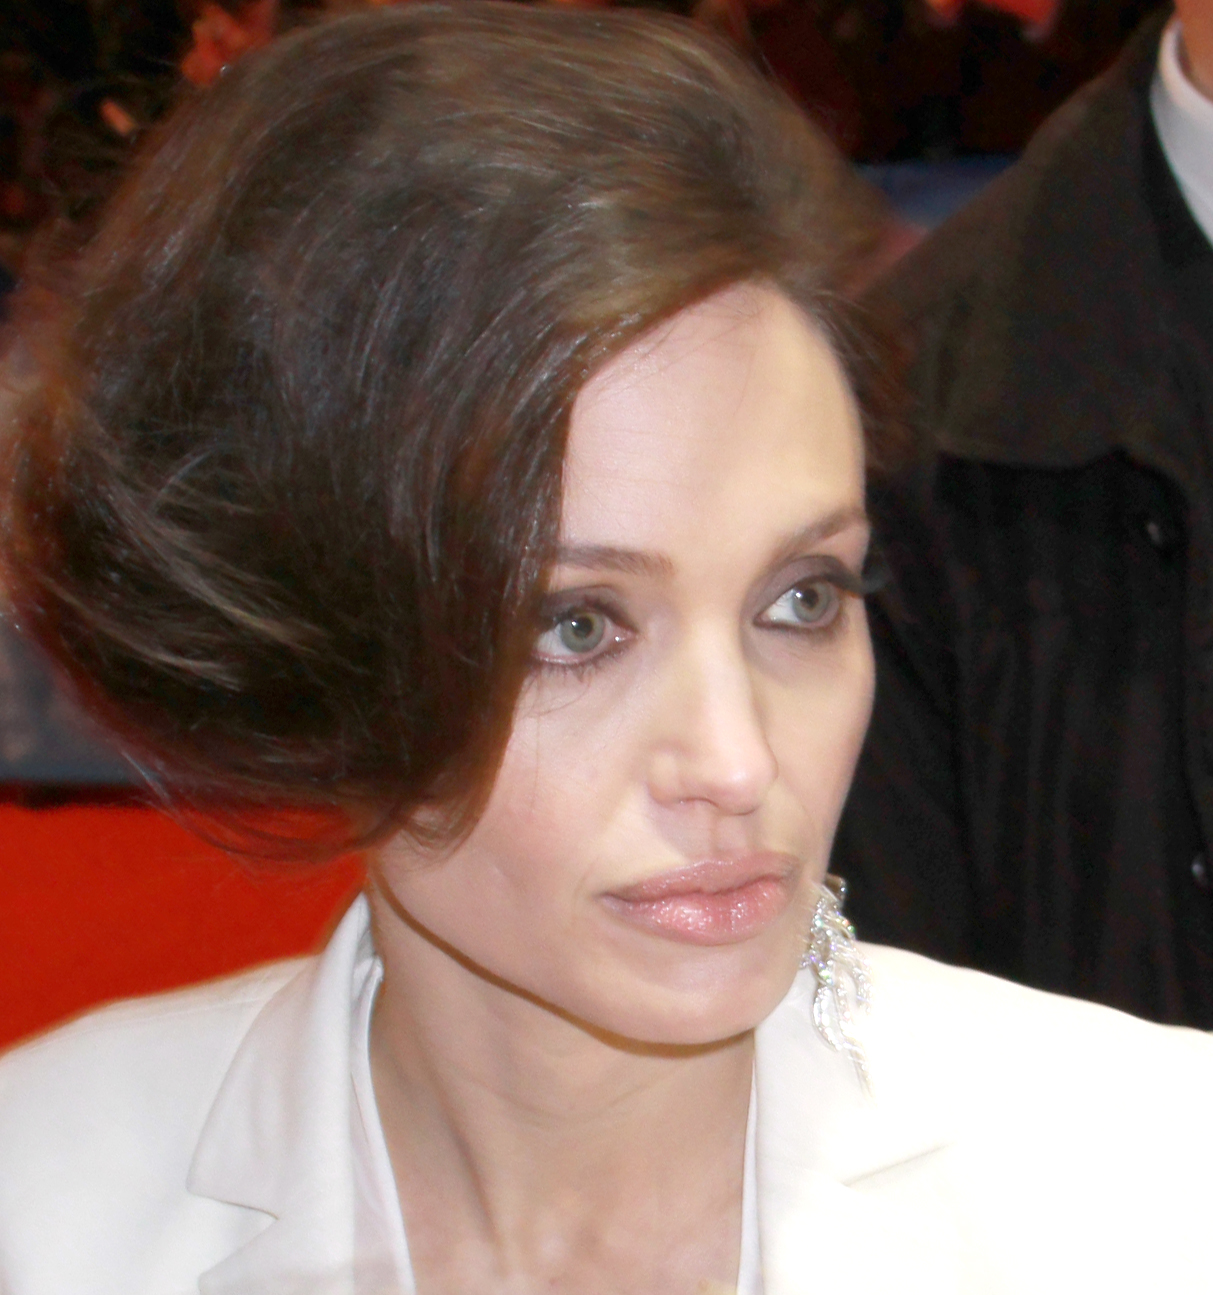 Angelina Jolie photo #101138, Angelina Jolie image